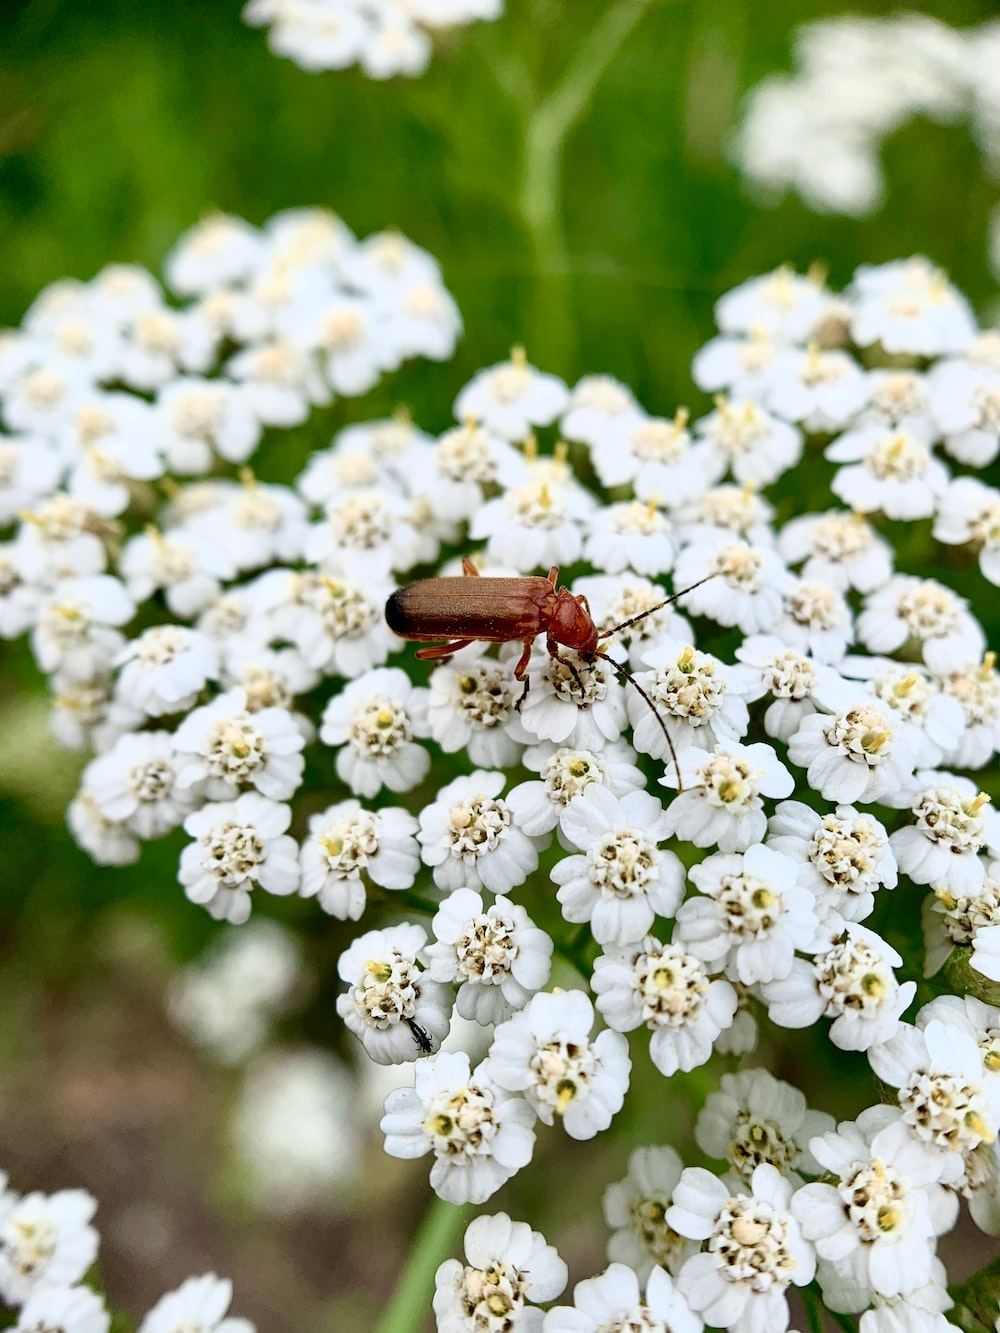 brown and black insect on white flowers